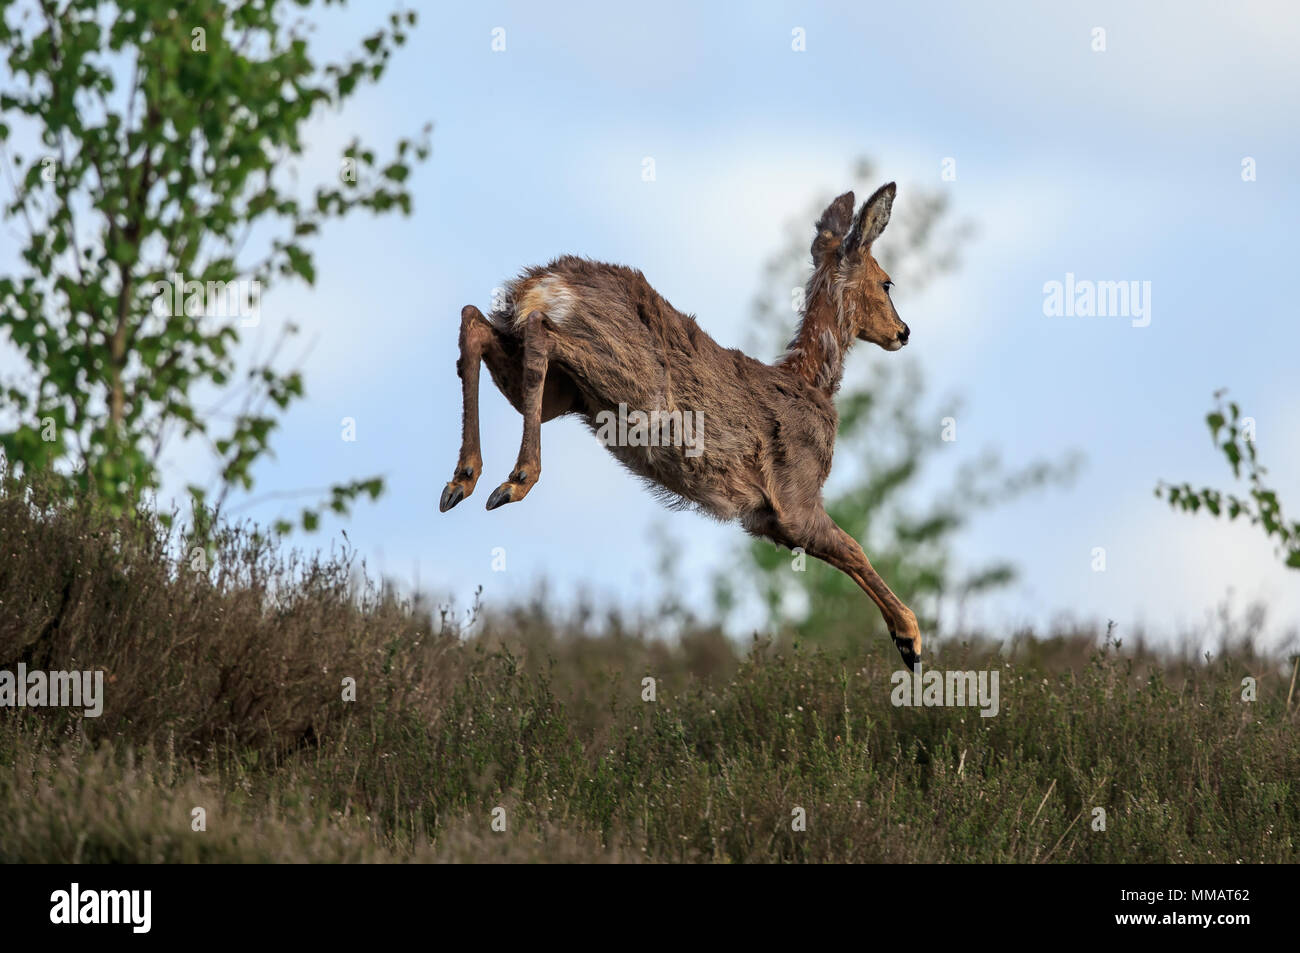 A Roe deer hind leaping while running - Stock Image